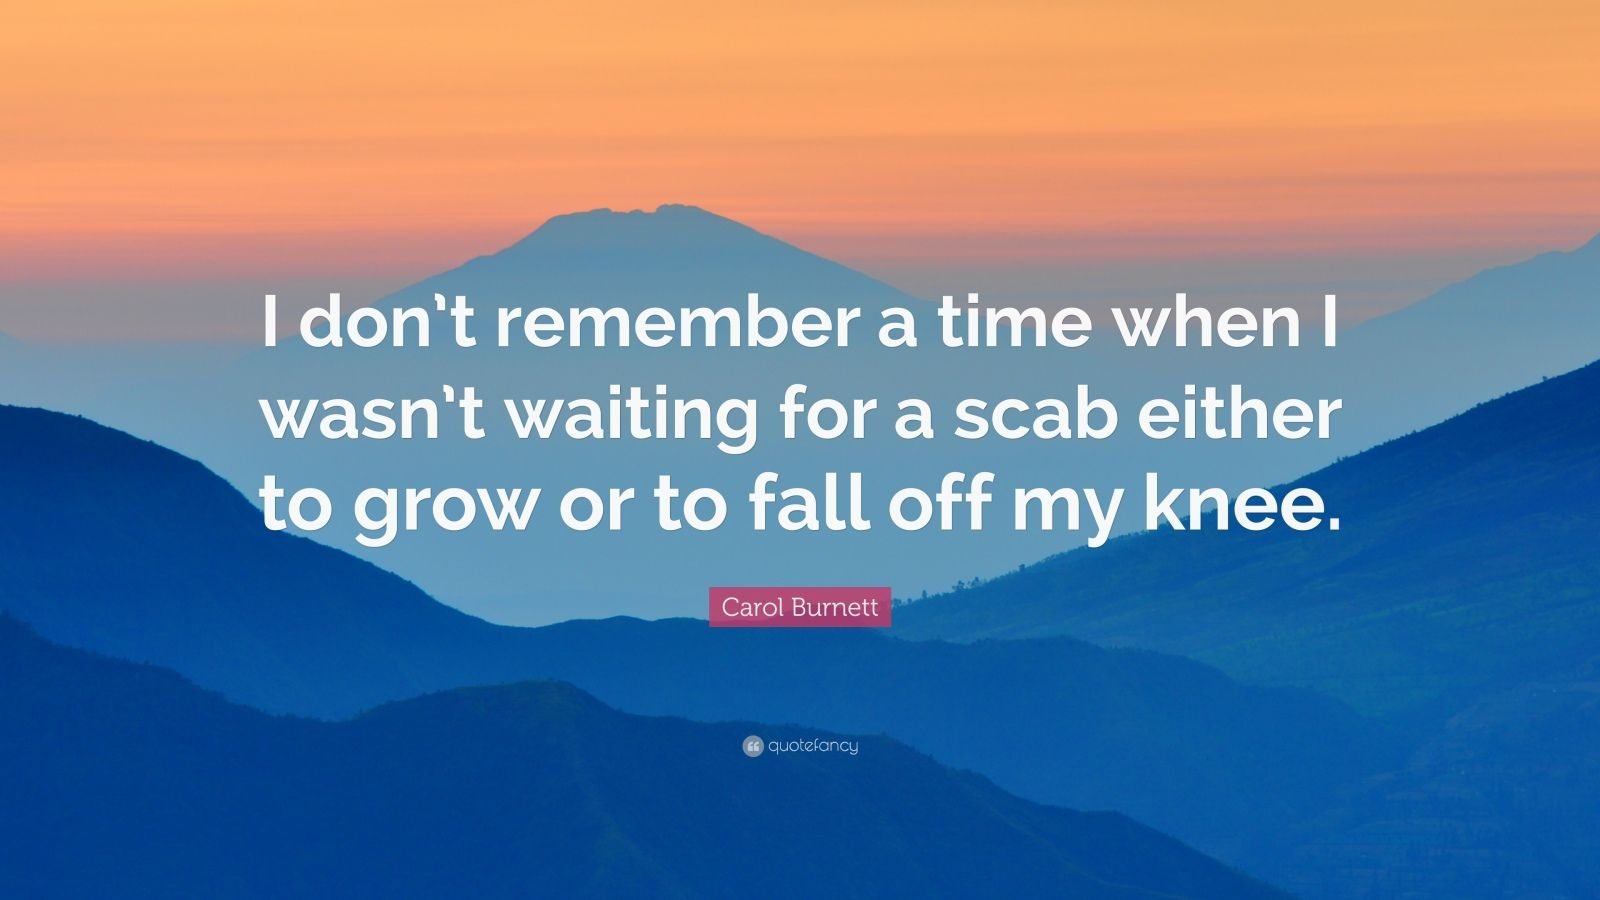 """Carol Burnett Quote: """"I don't remember a time when I wasn't waiting for a scab either to grow or to fall off my knee."""""""